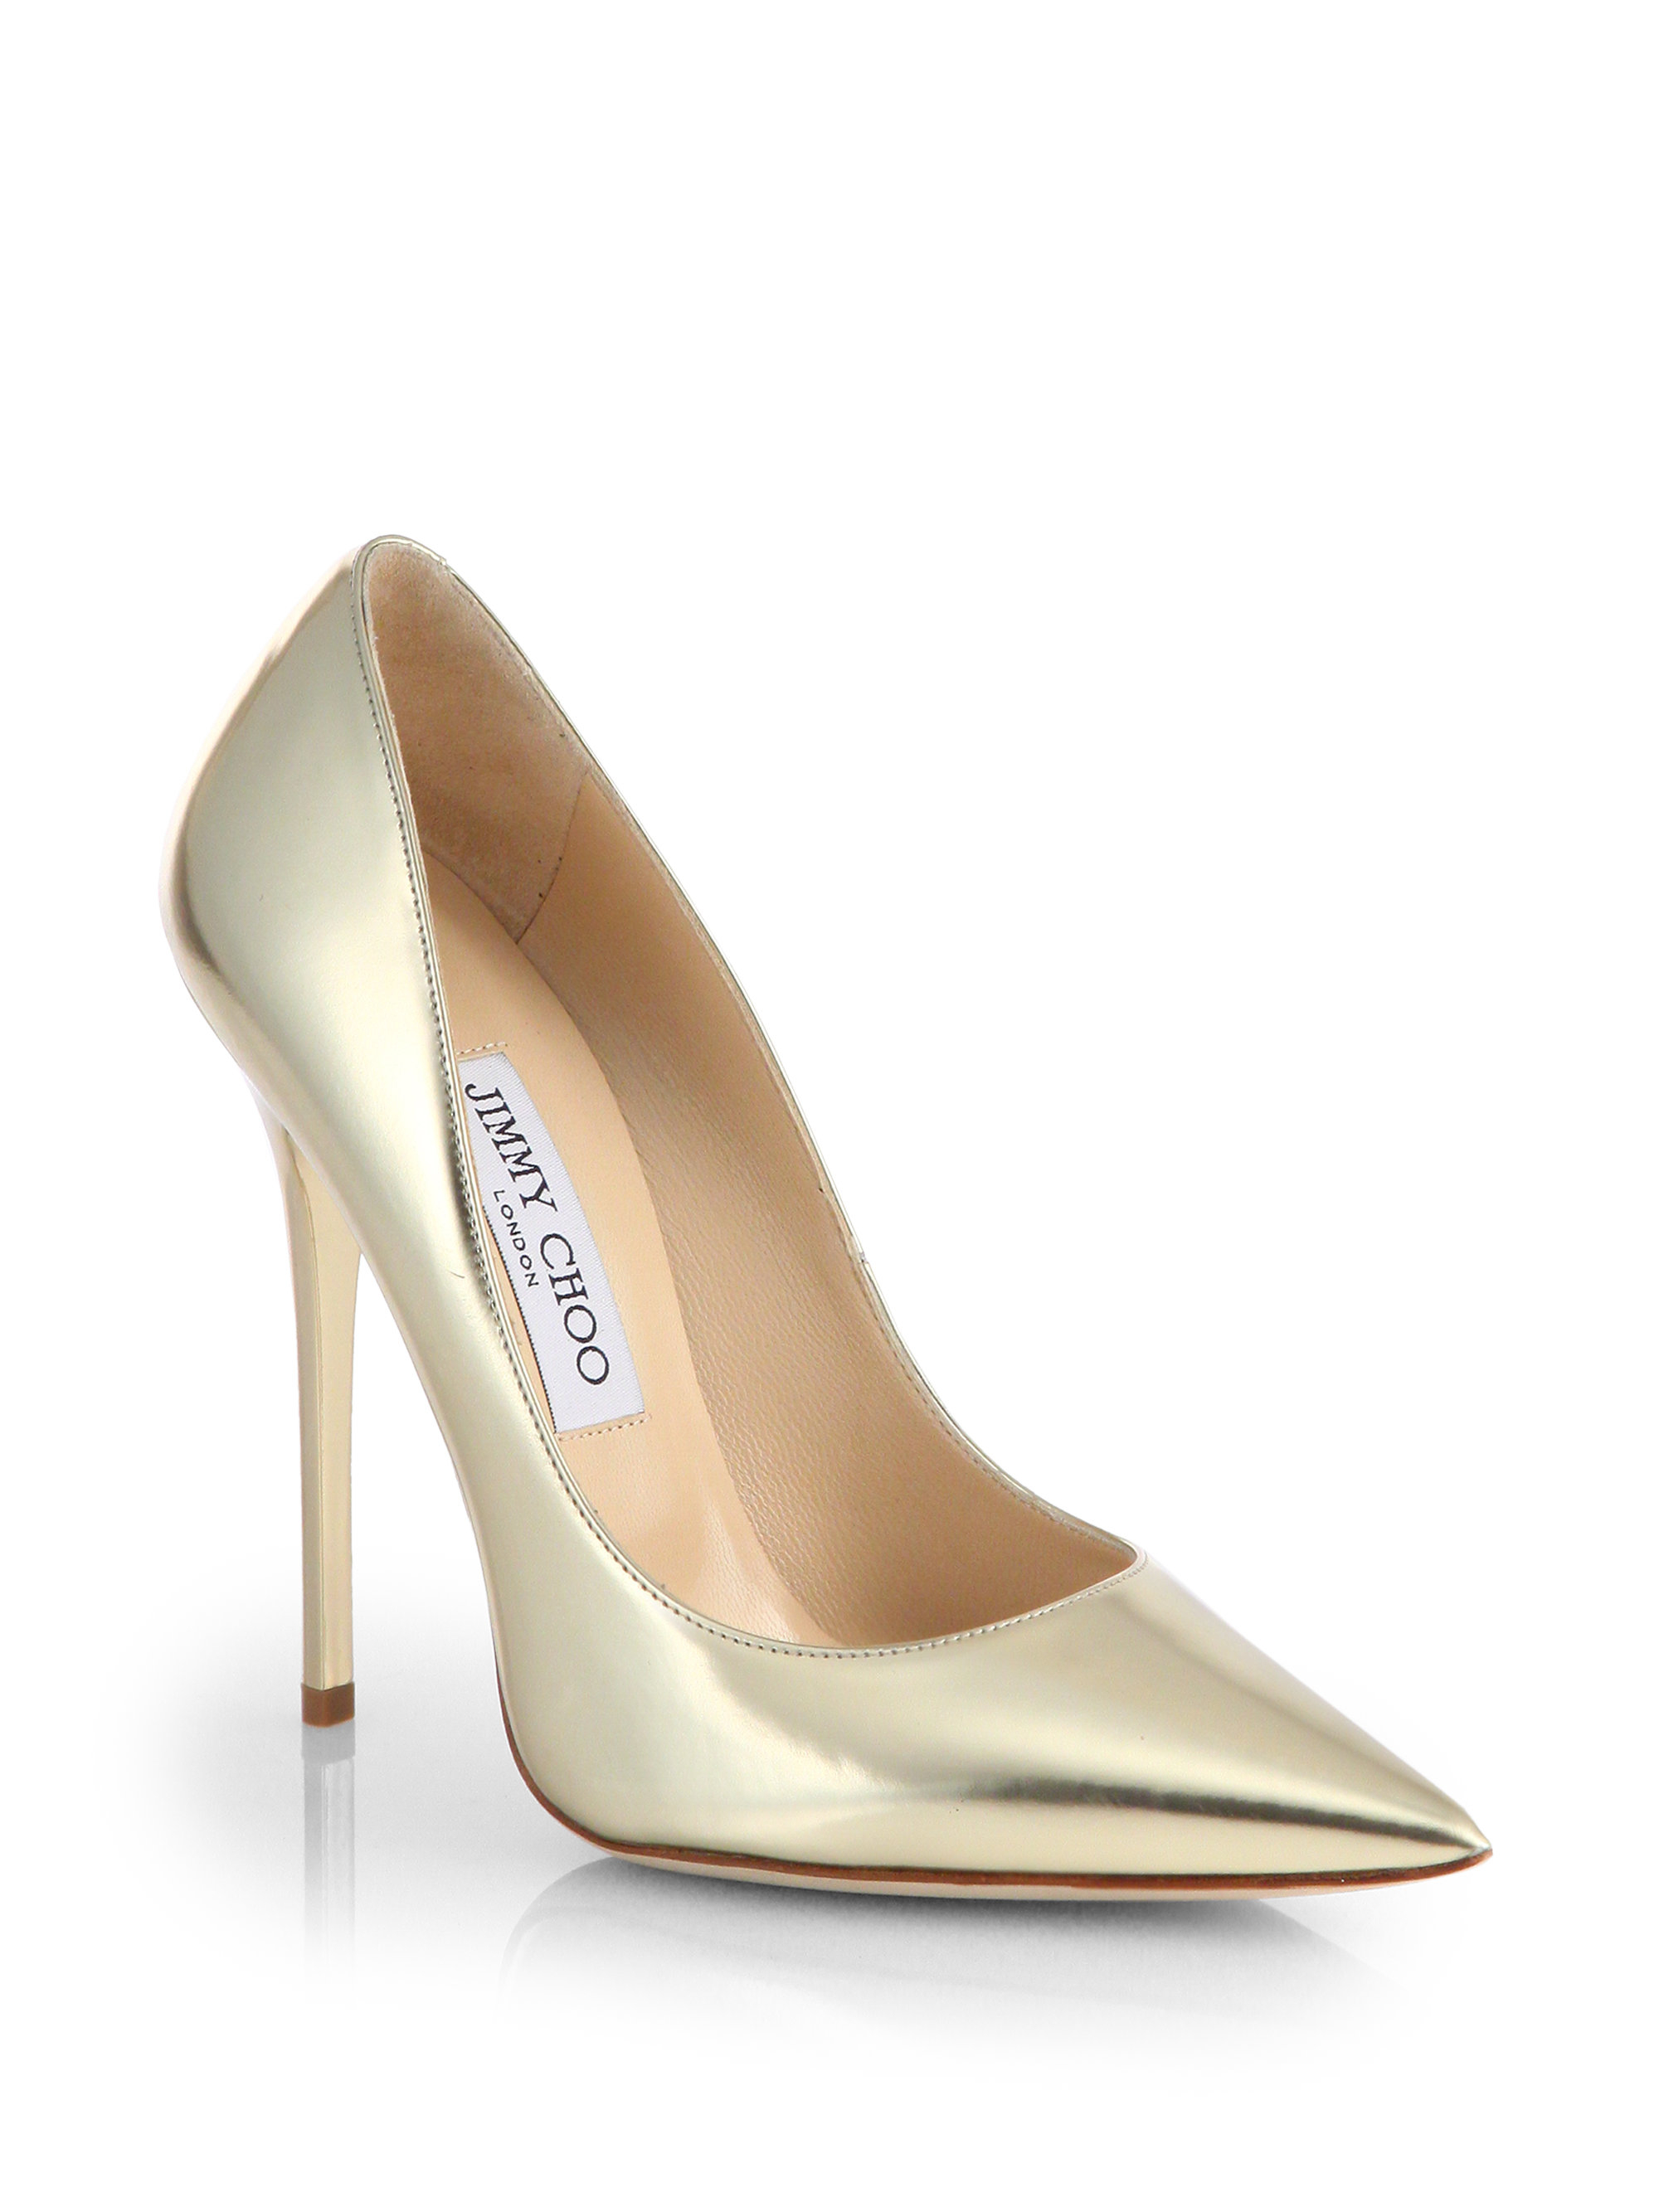 6bfd67441925 ... where to buy lyst jimmy choo anouk metallic leather point toe pumps in  metallic d1e61 6863f ...